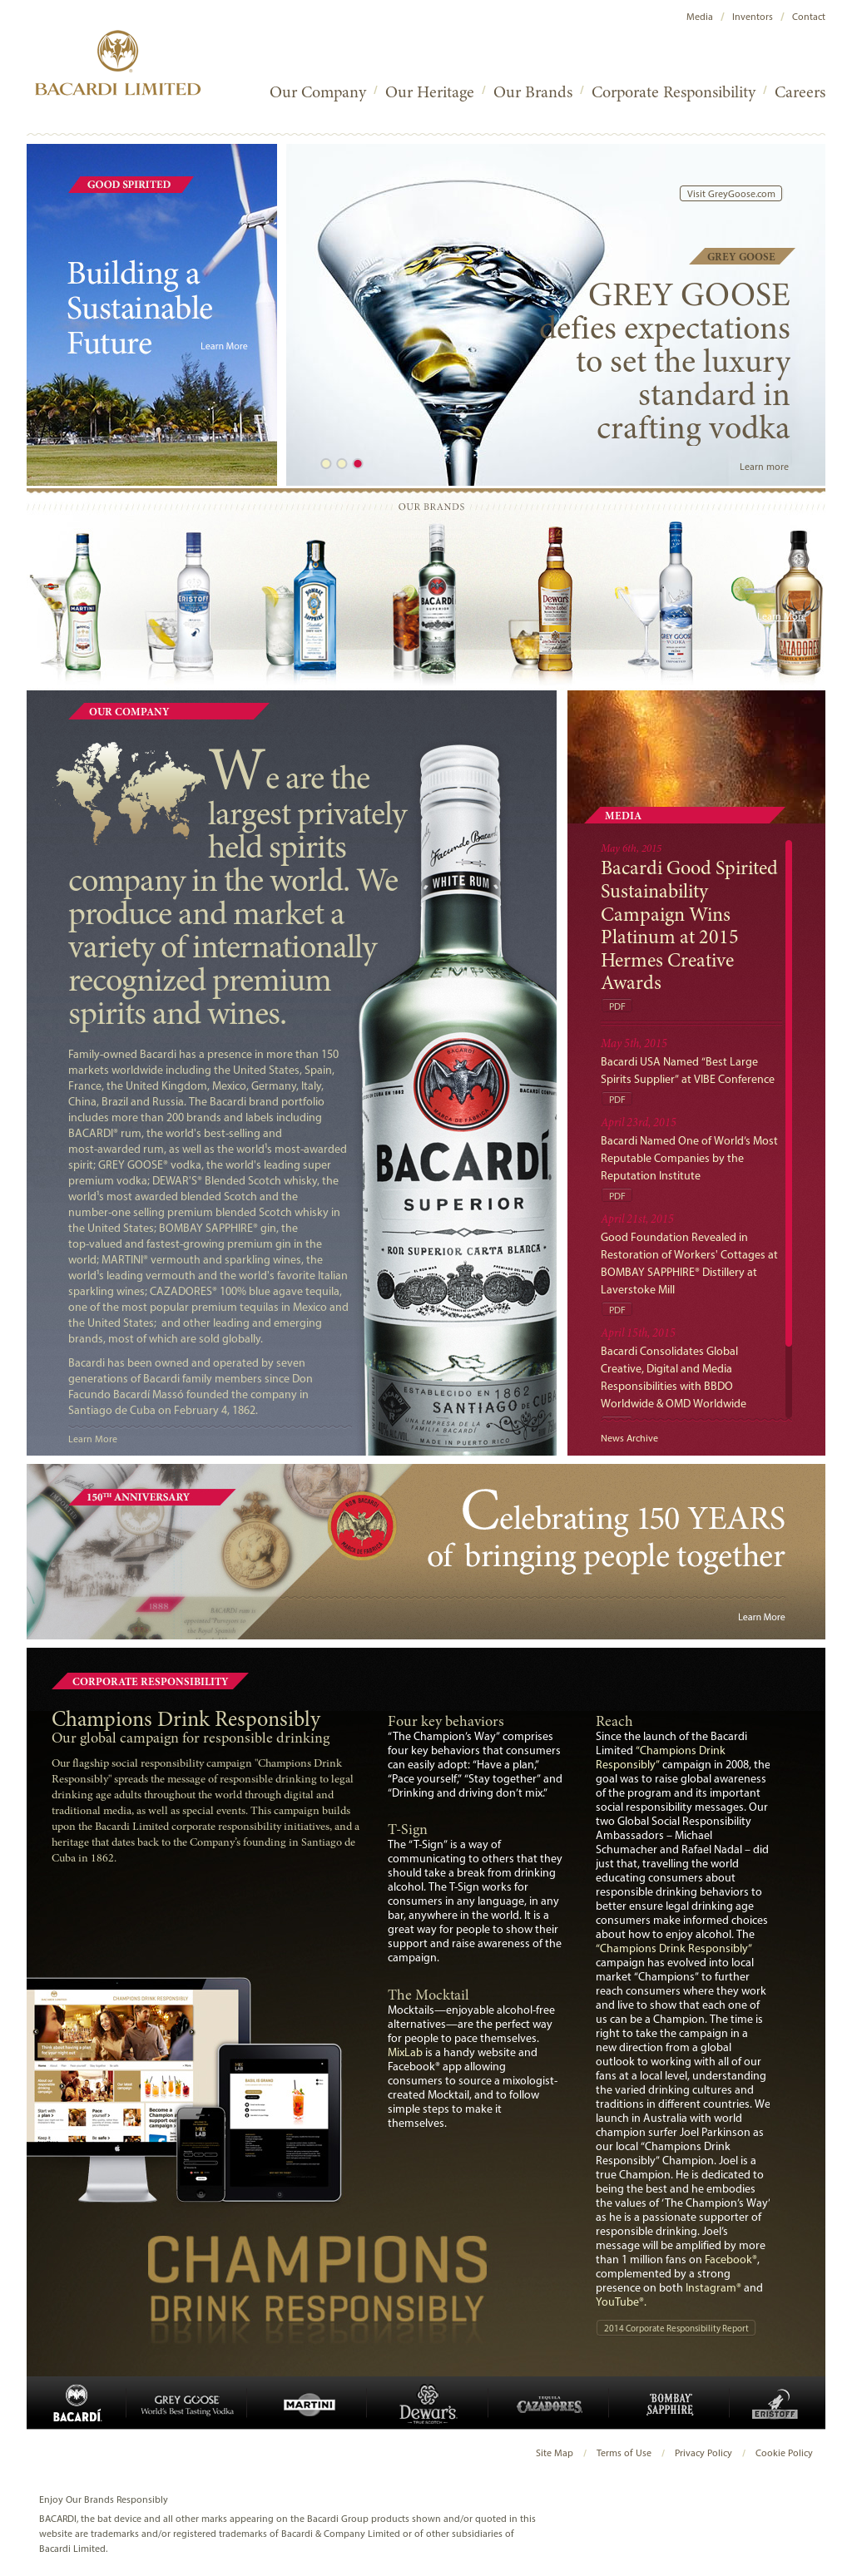 Bacardi Competitors, Revenue and Employees - Owler Company Profile